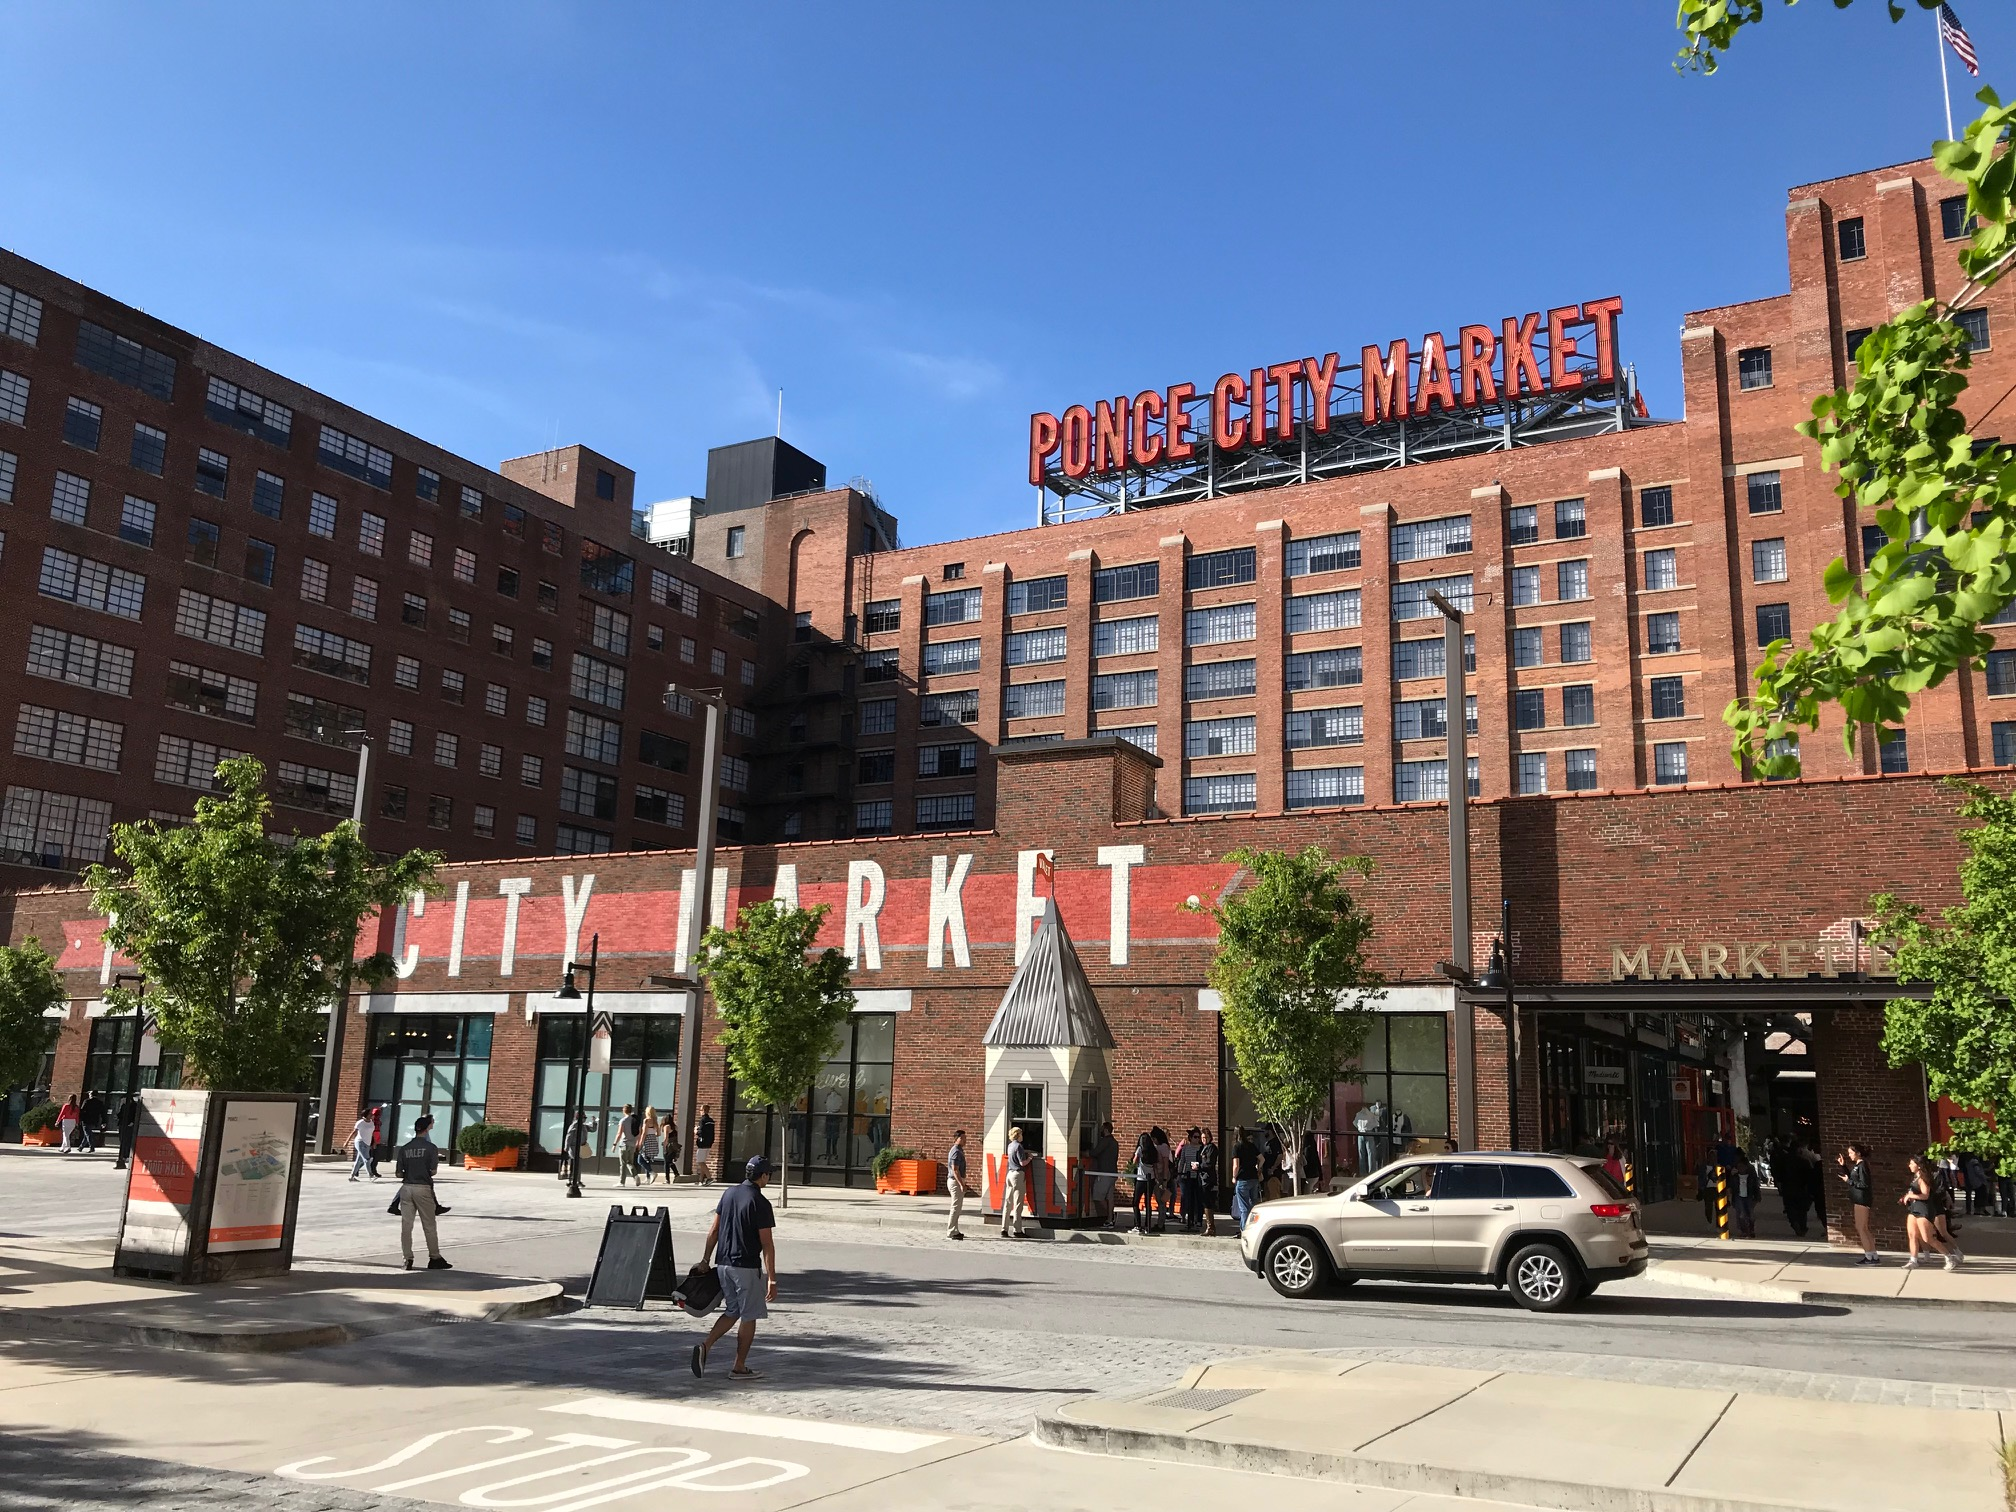 Ponce City Market is a massive Sears Roebuck & Co. retail store, warehouse and regional office.  Today it is home to restaurants and shops.  It is surrounded by new condo developments.